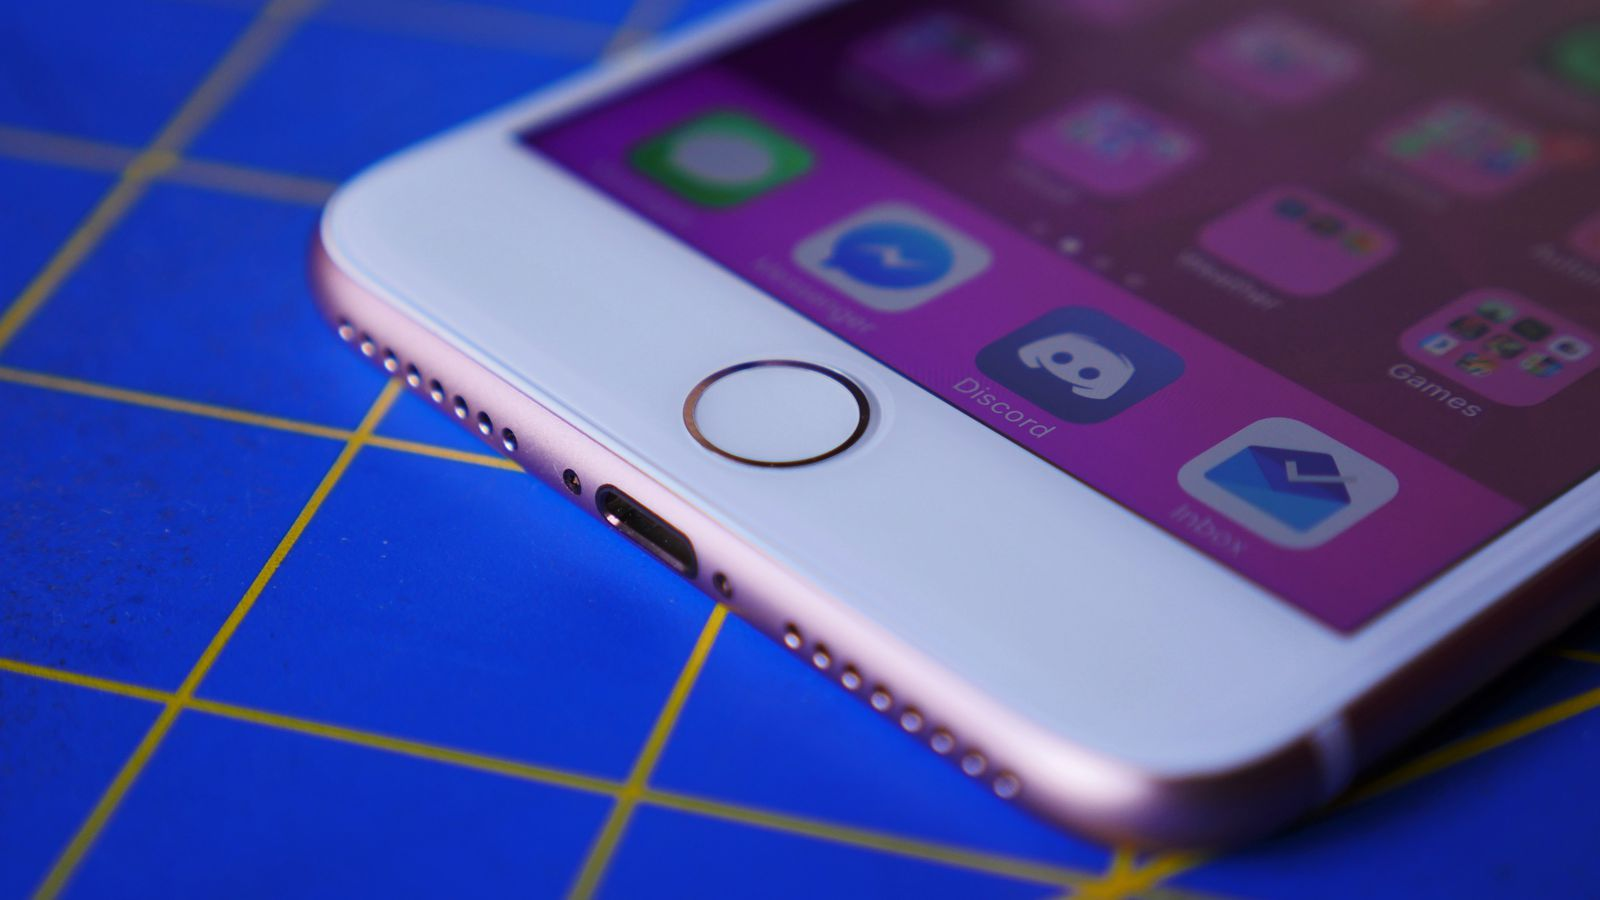 Is Your iPhone 7 Home Button Broken? Apple Offers Odd Temporary Workaround